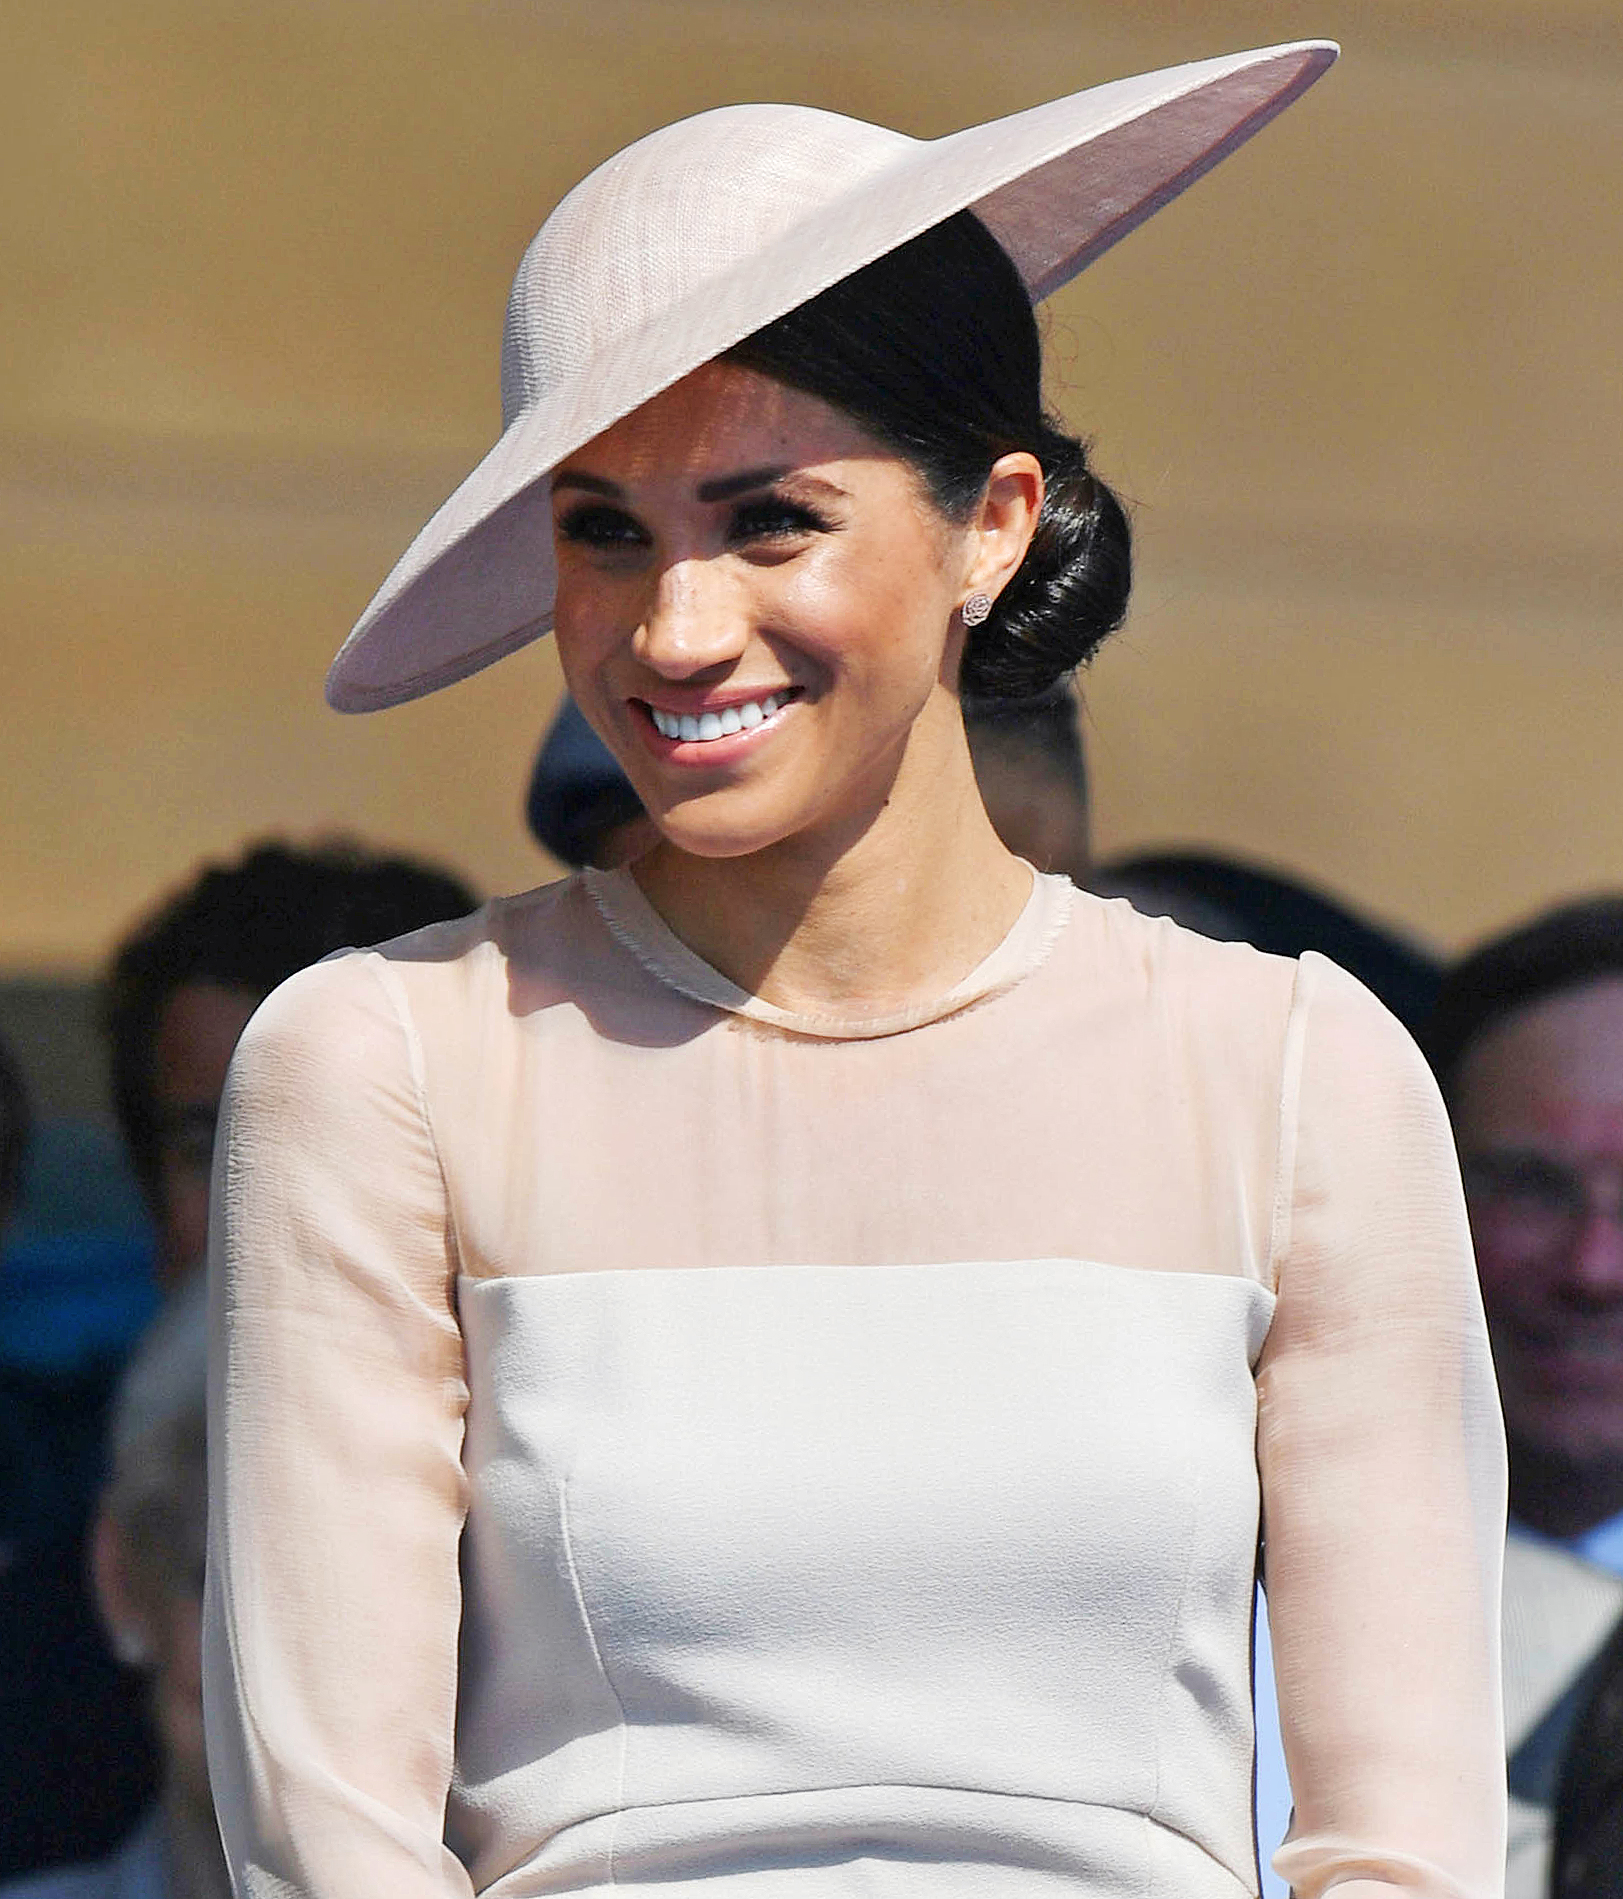 Prince Harry and Meghan Duchess of Sussex Attend Buckingham Palace Garden Party